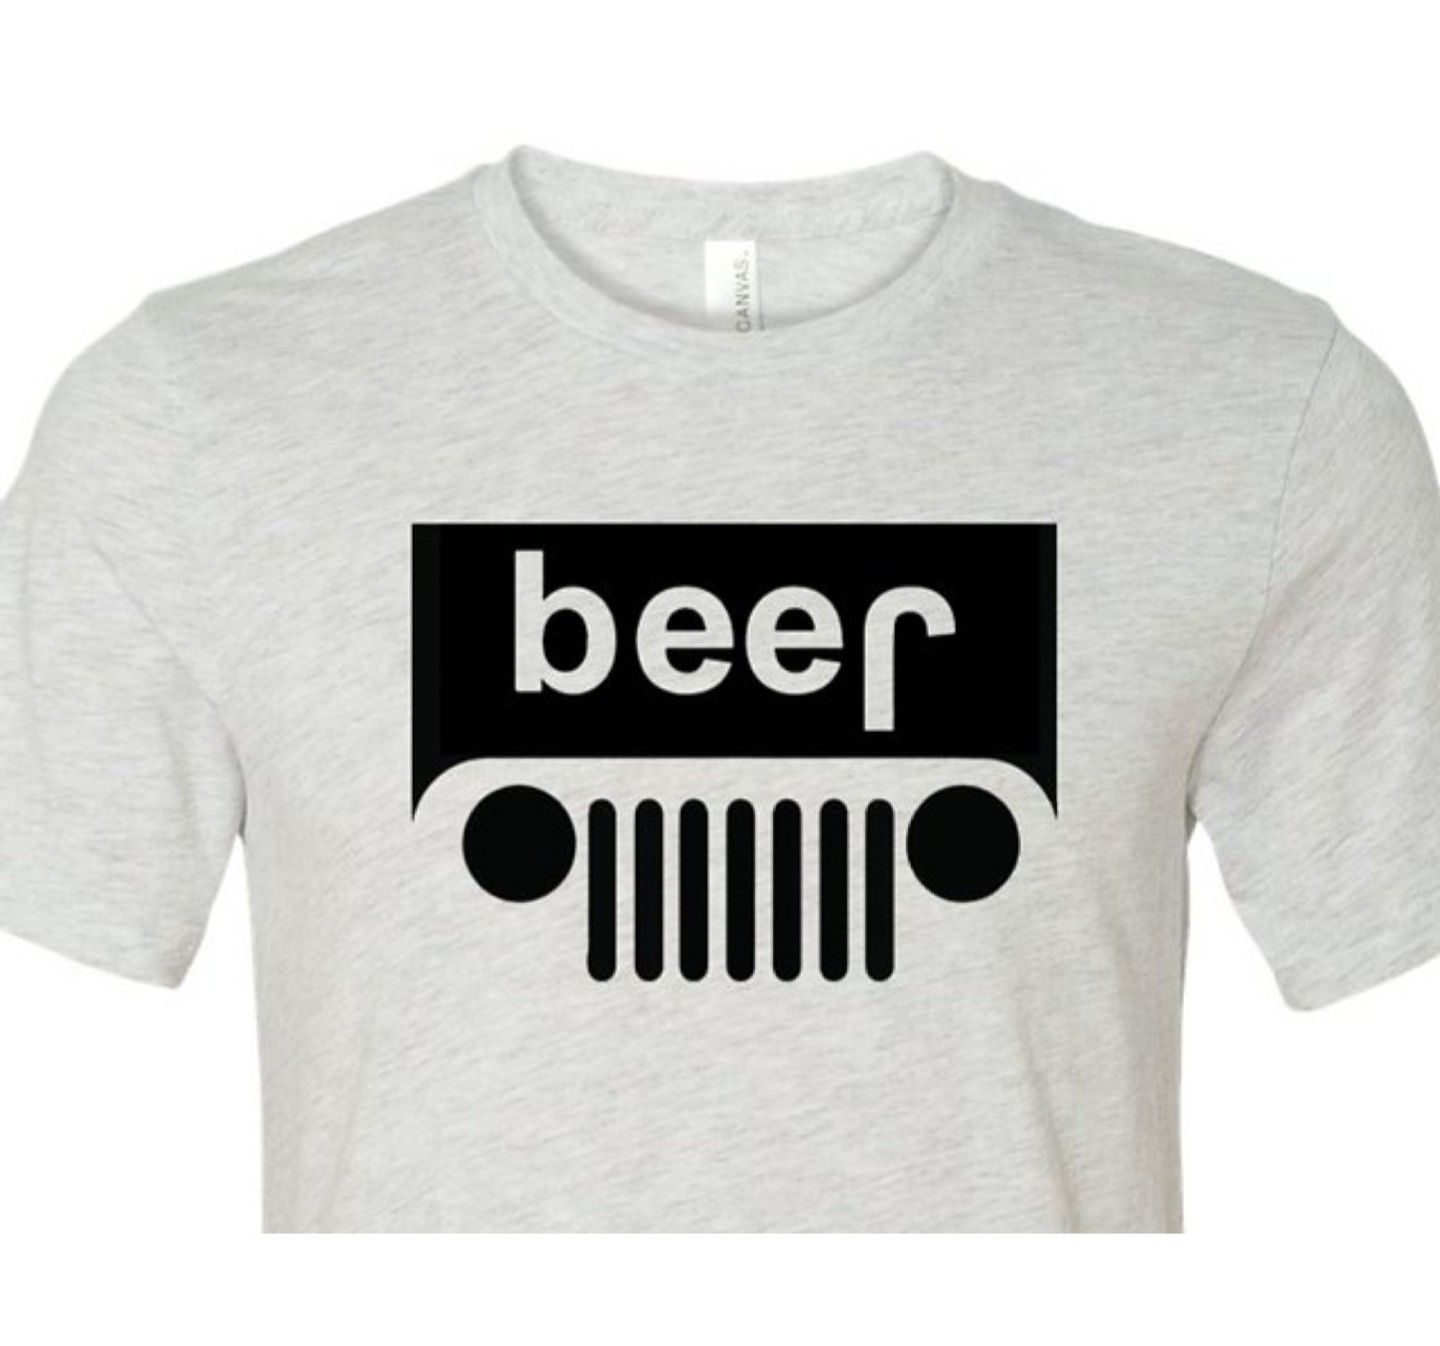 Jeep Beer Shirt D 90 American Garage Art Beer Shirts Jeep Beer Beer